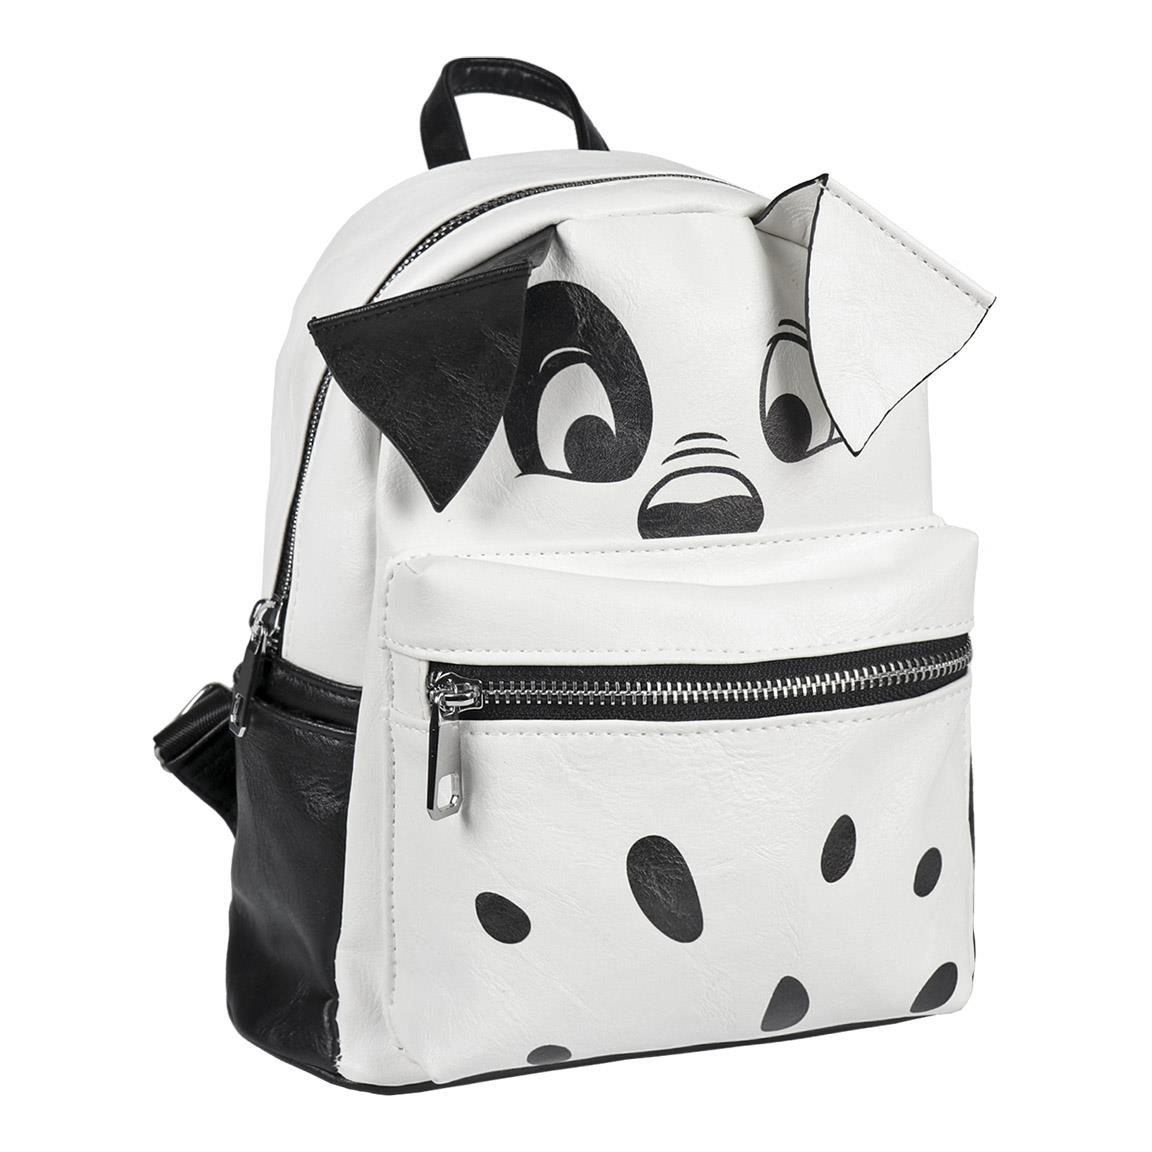 Les 101 Dalmatiens sac à dos Casual Fashion Patch 22 x 25 x 11 cm